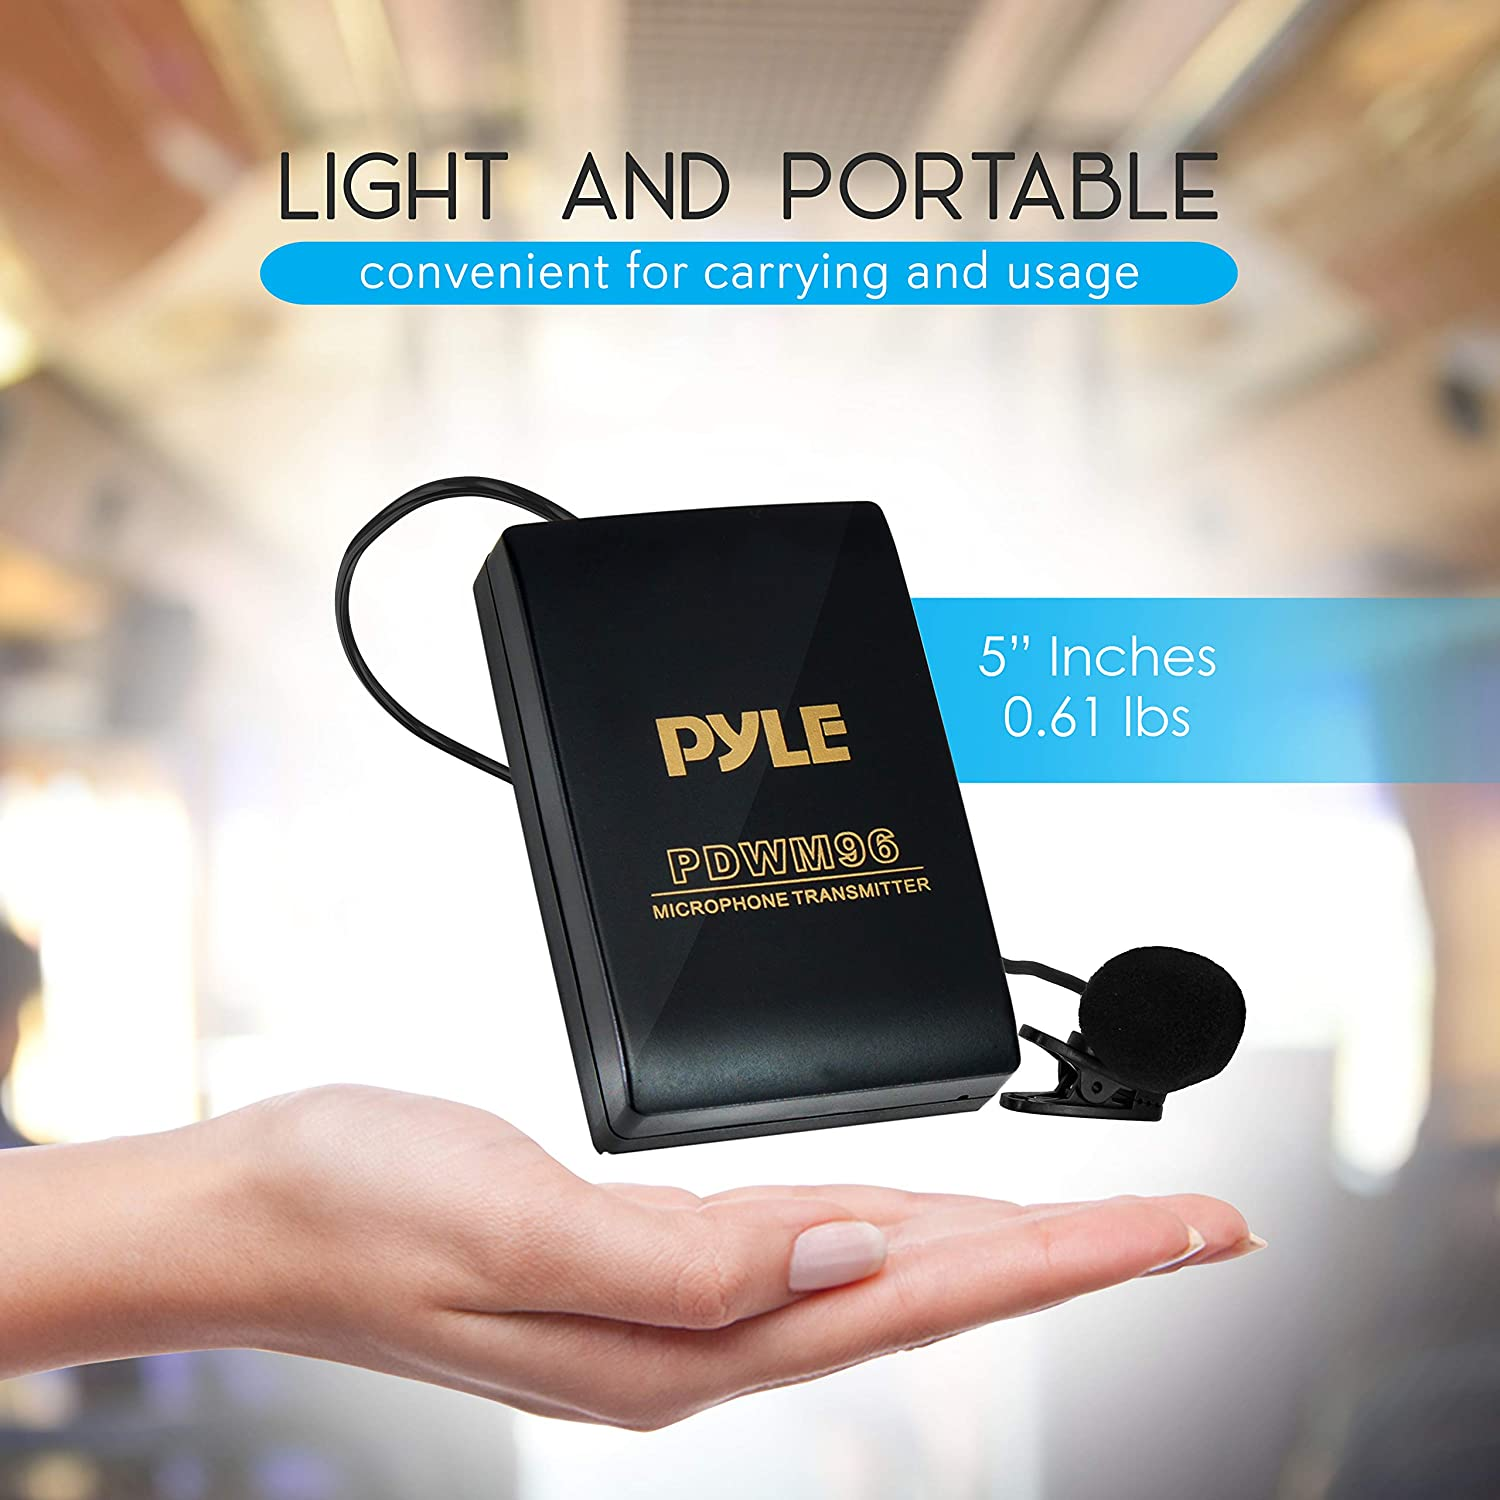 Portable Professional Clip Lav lapel Mic set with Volume Control Transmitter Pyle Pro PDWM96 Wireless Clip Lavalier Microphone System Receiver 20 ft range Battery Sound Recorder For Camera